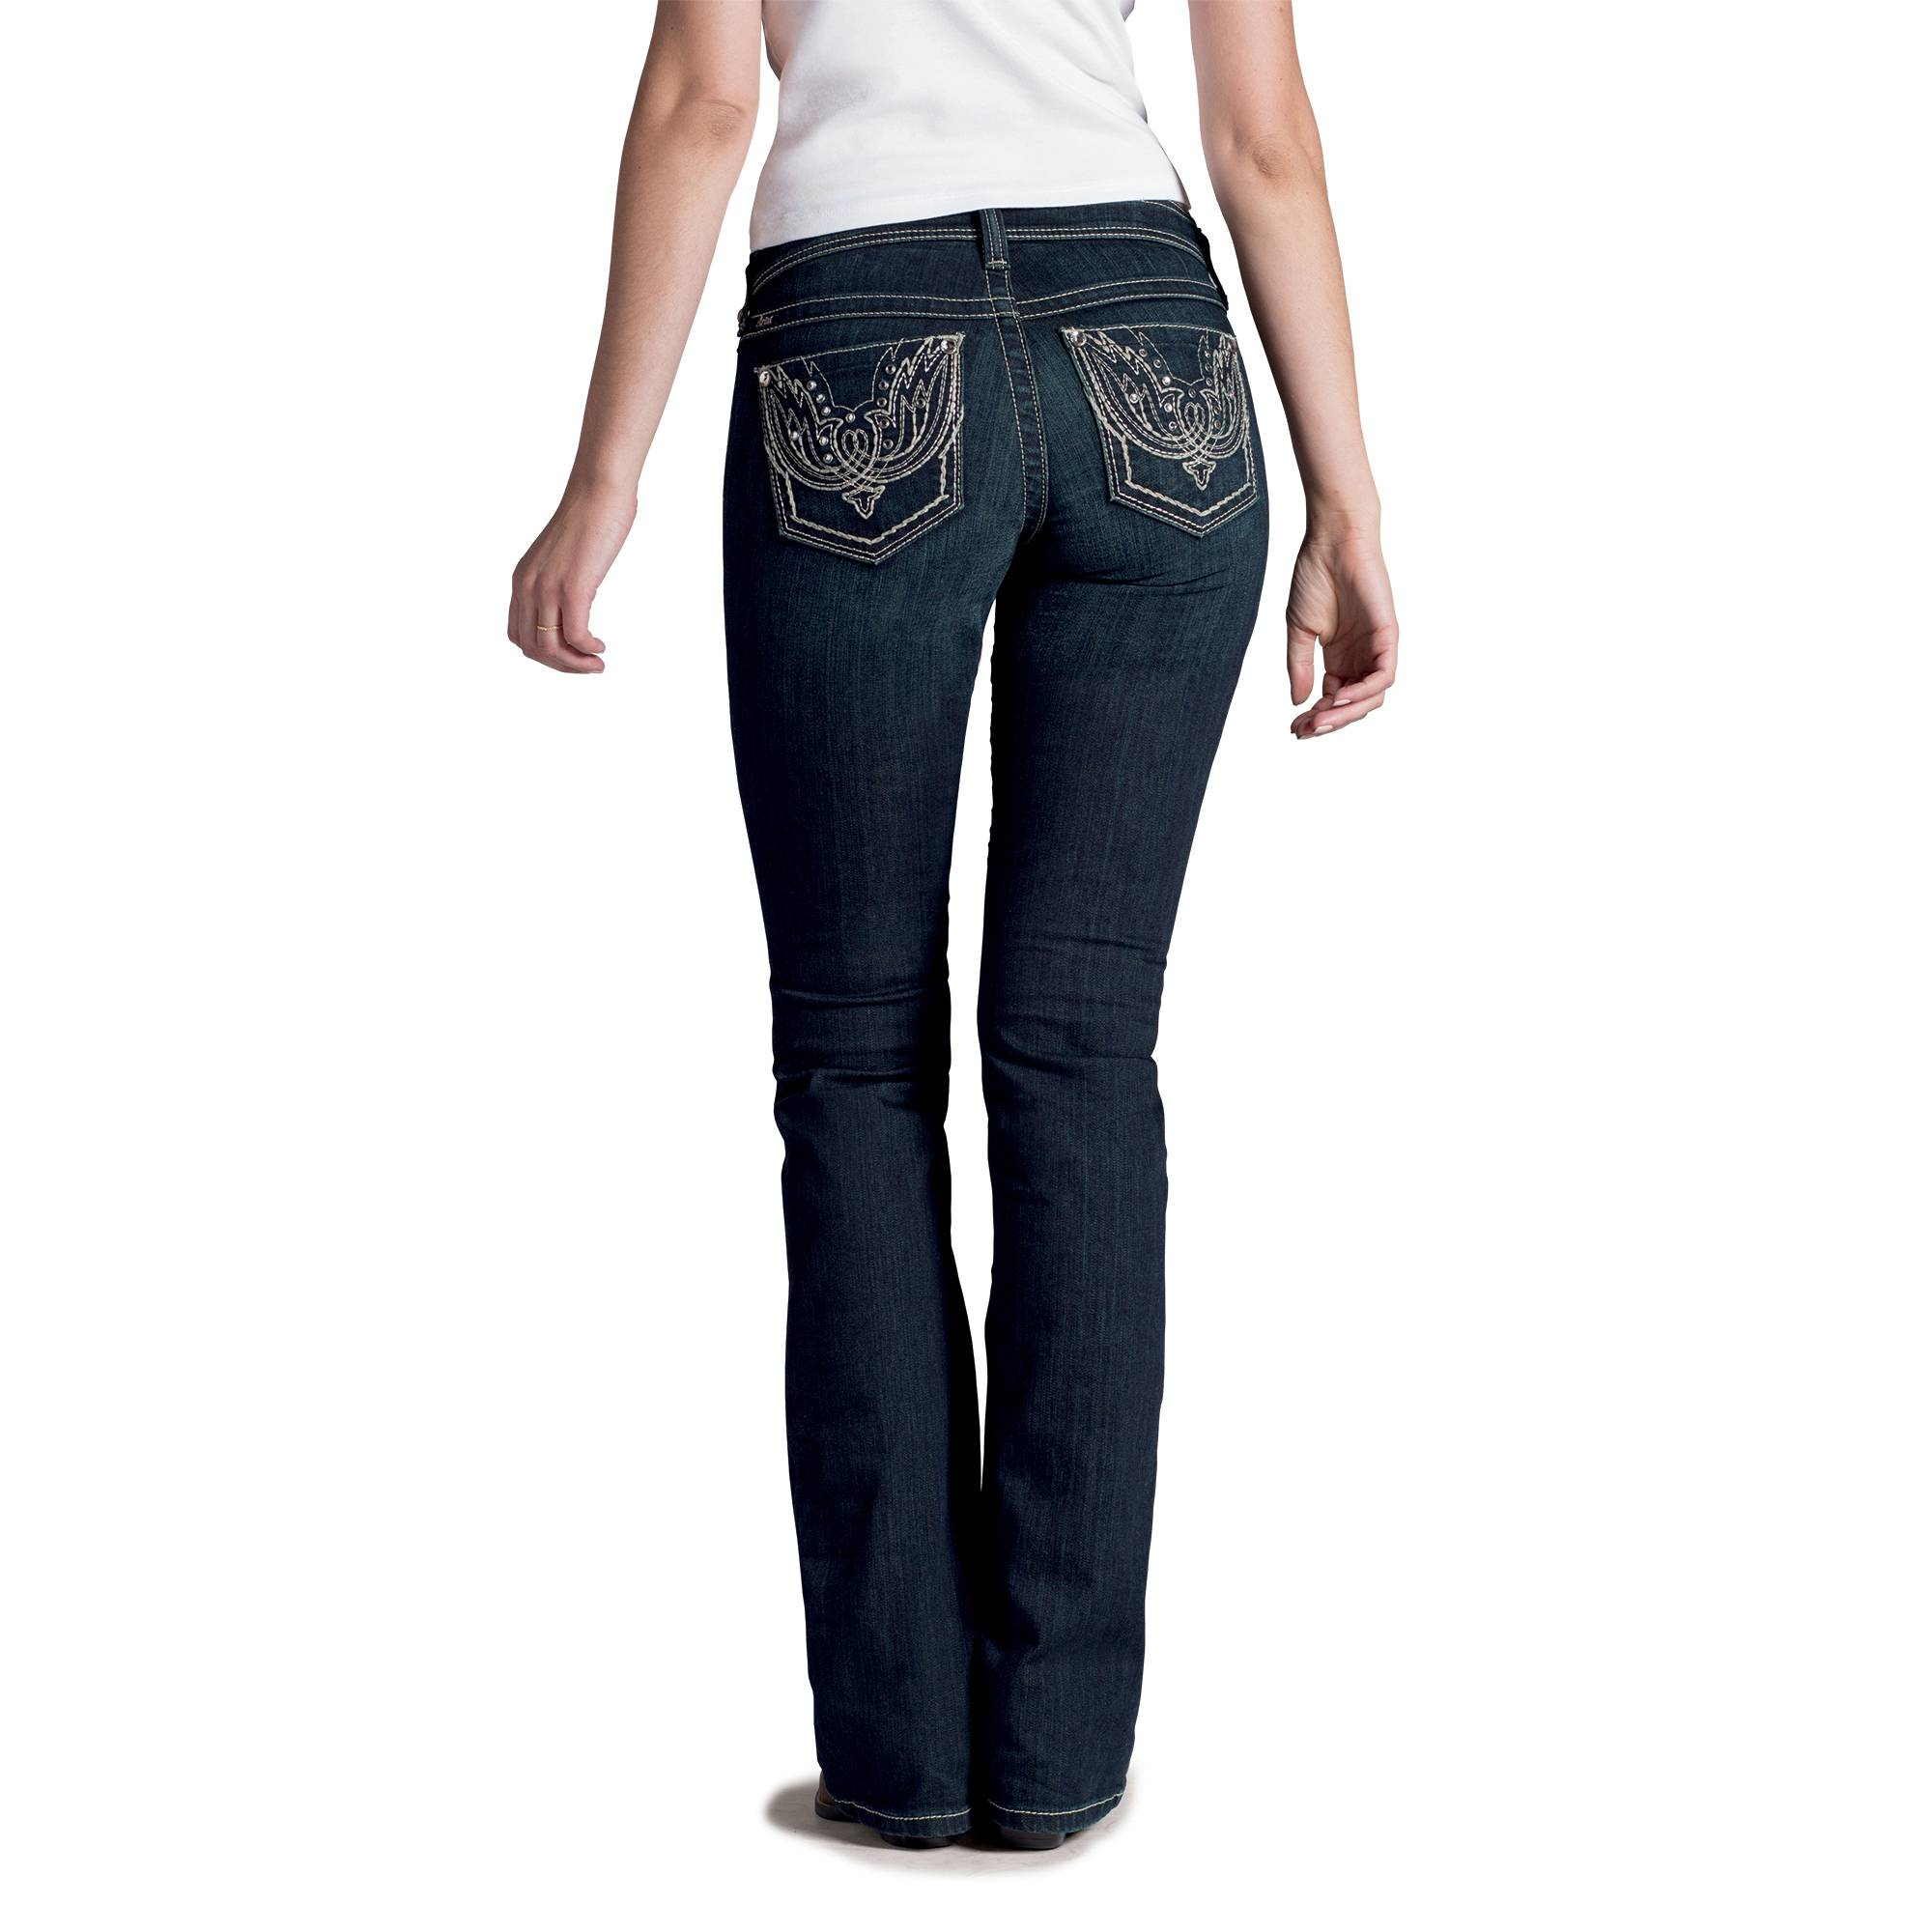 Ariat Turquoise Firebird Jeans - Ladies, Big Sky